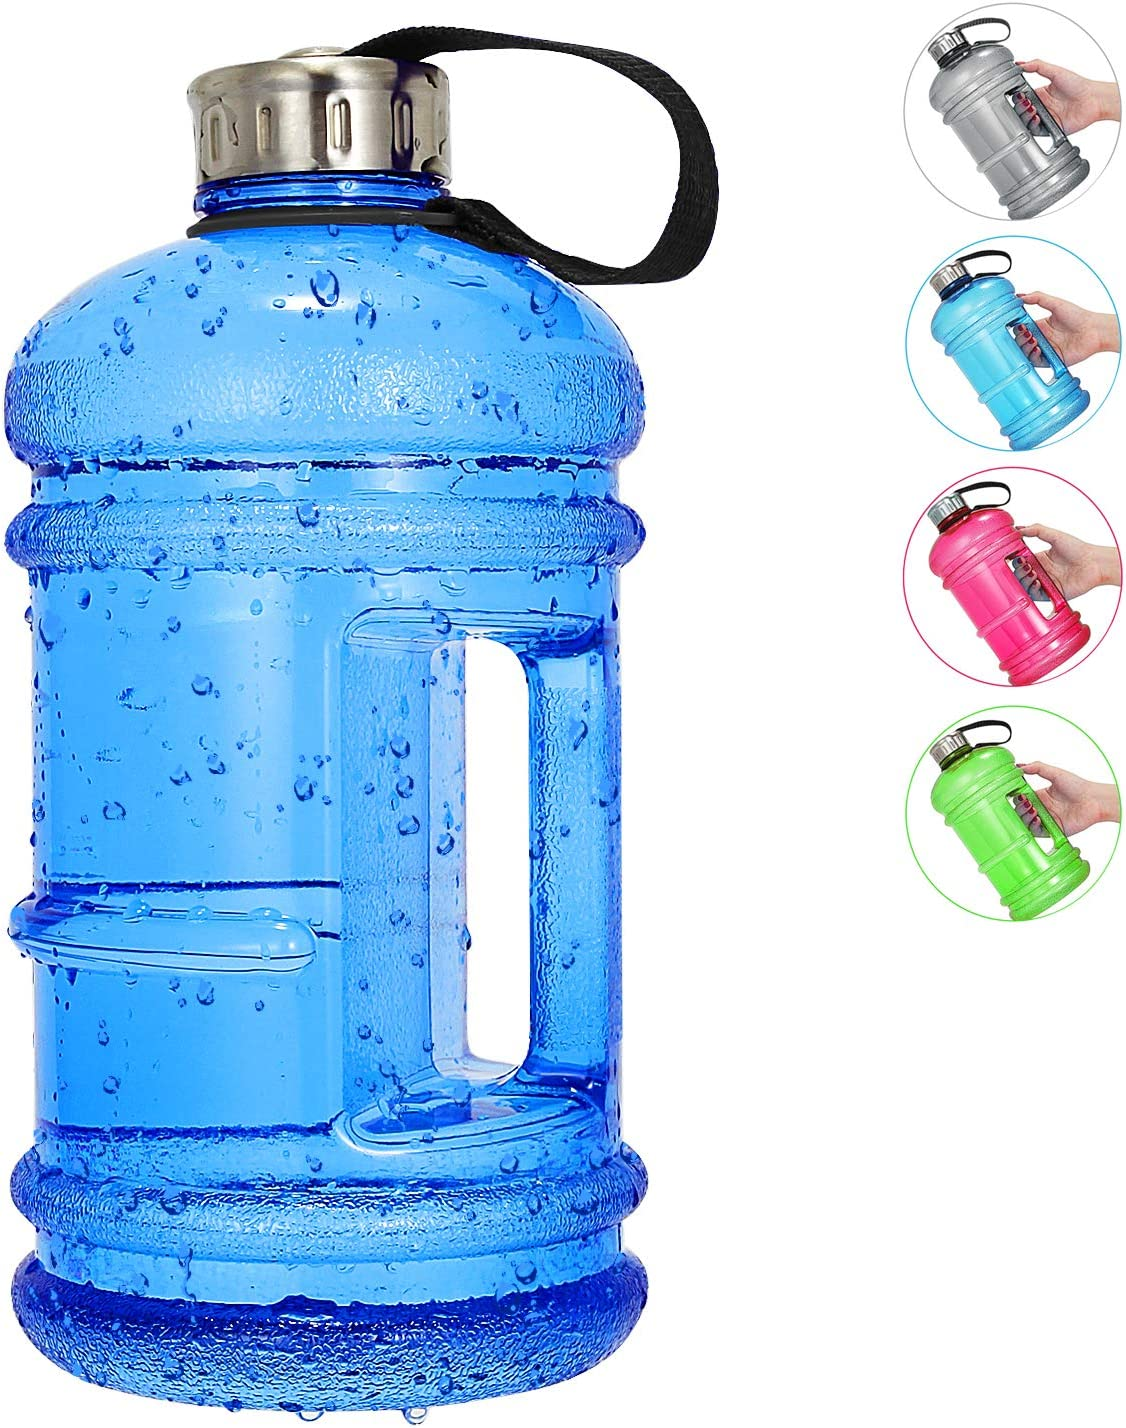 Amazon Com Vaupan Half Gallon Big Water Bottle 2 2l 73 Oz Large Leak Proof Sports Jug With Handle Huge Bpa Free Petg Plastic Wide Mouth Drinking Container Flask For Fitness Gym Biking Travel